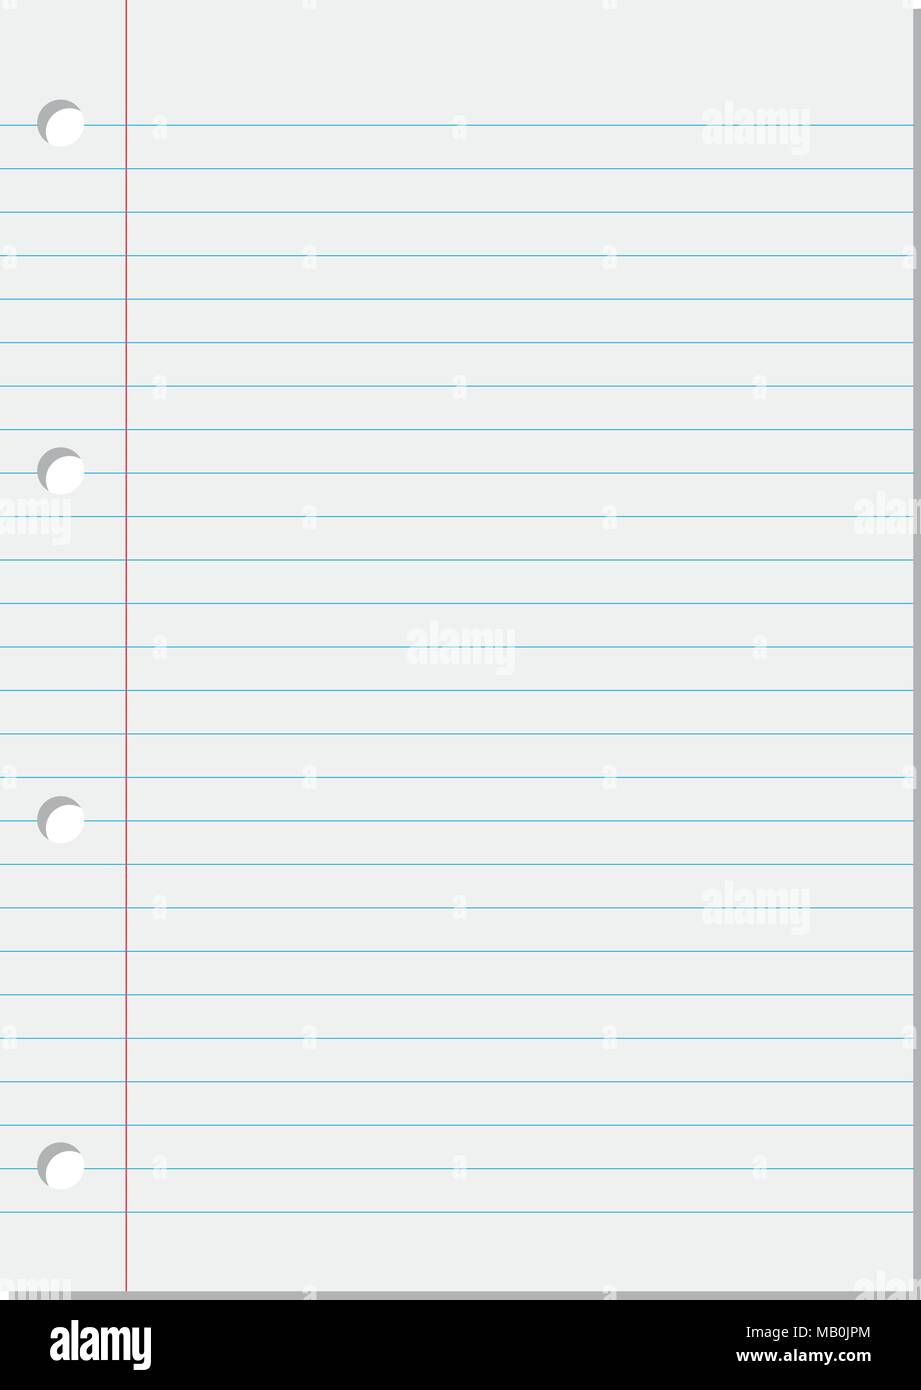 blank lined white paper sheet from notebook background with blue